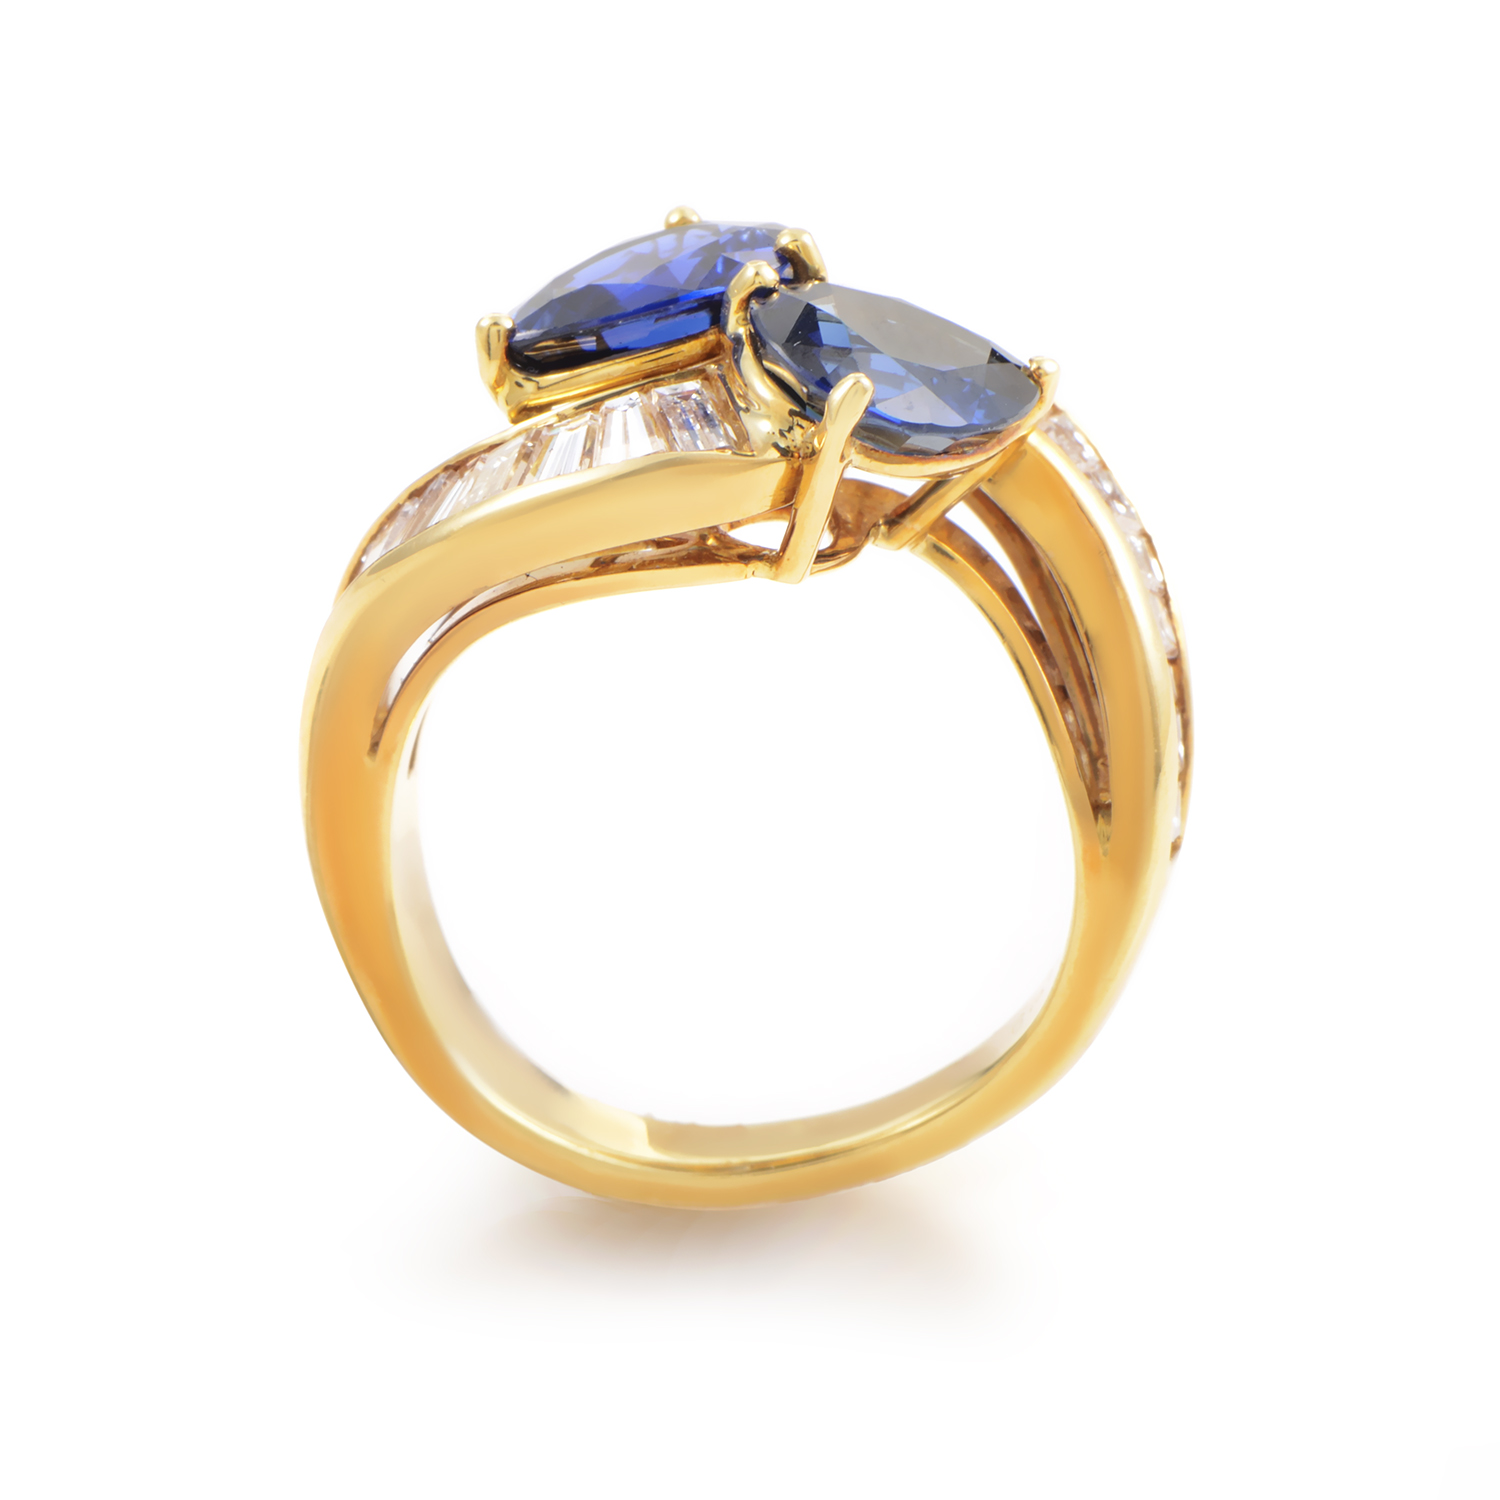 Estate Graff 18k Yellow Gold Diamond And Sapphire Ring